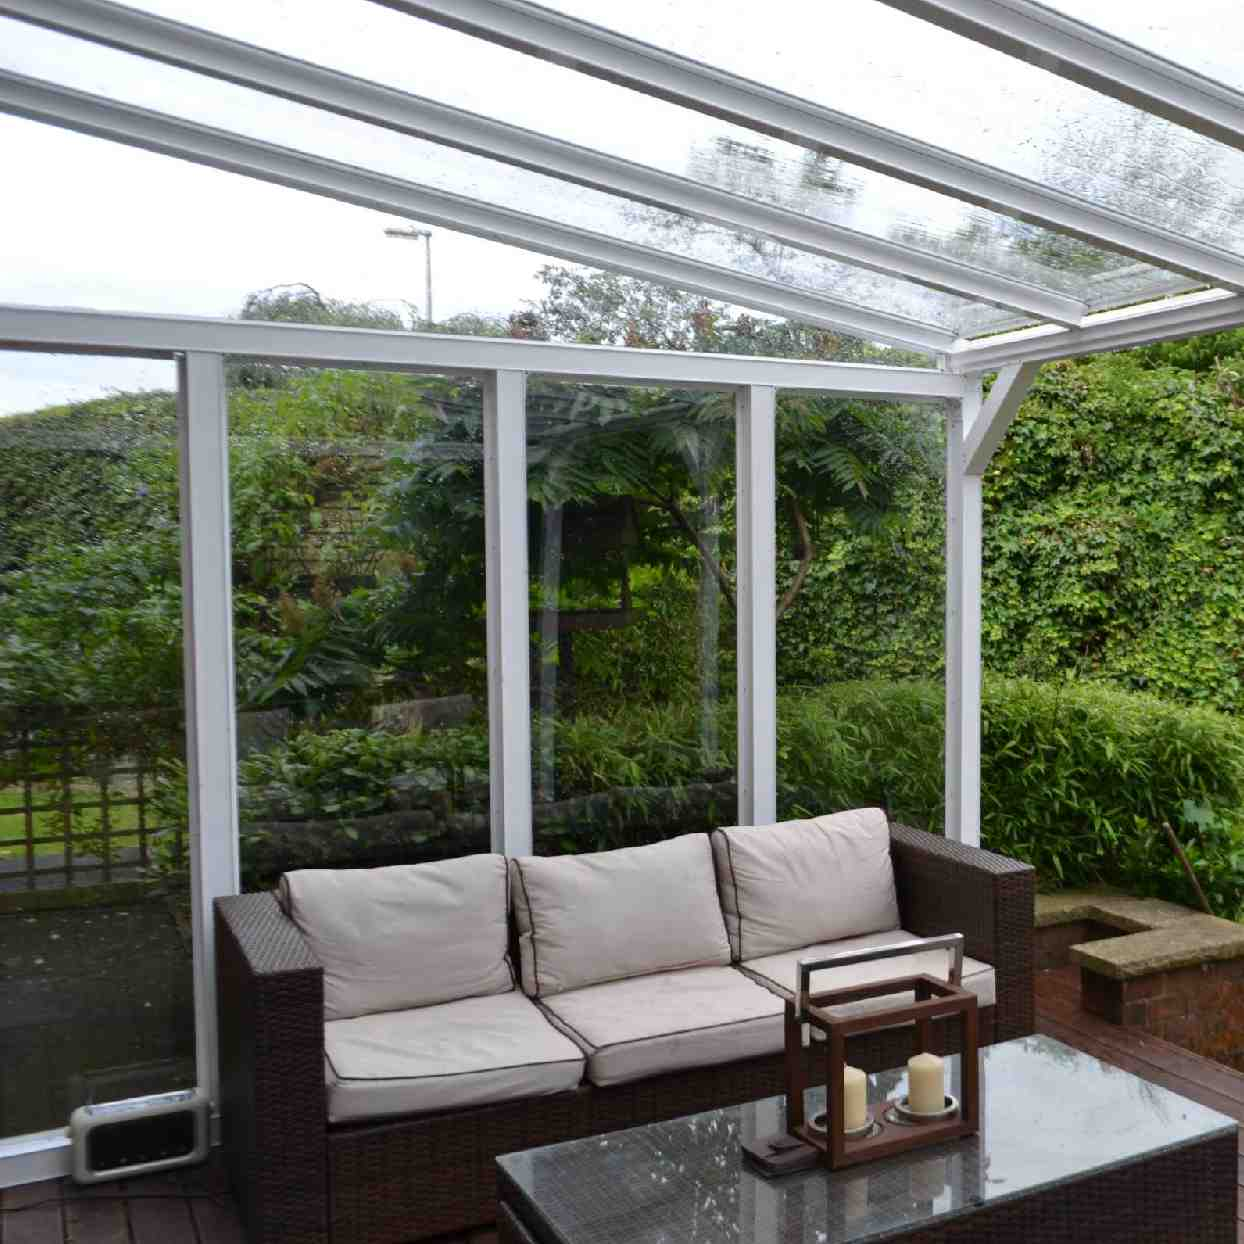 Buy Omega Verandah with 6mm Glass Clear Plate Polycarbonate Glazing - 2.8m (W) x 2.5m (P), (2) Supporting Posts online today